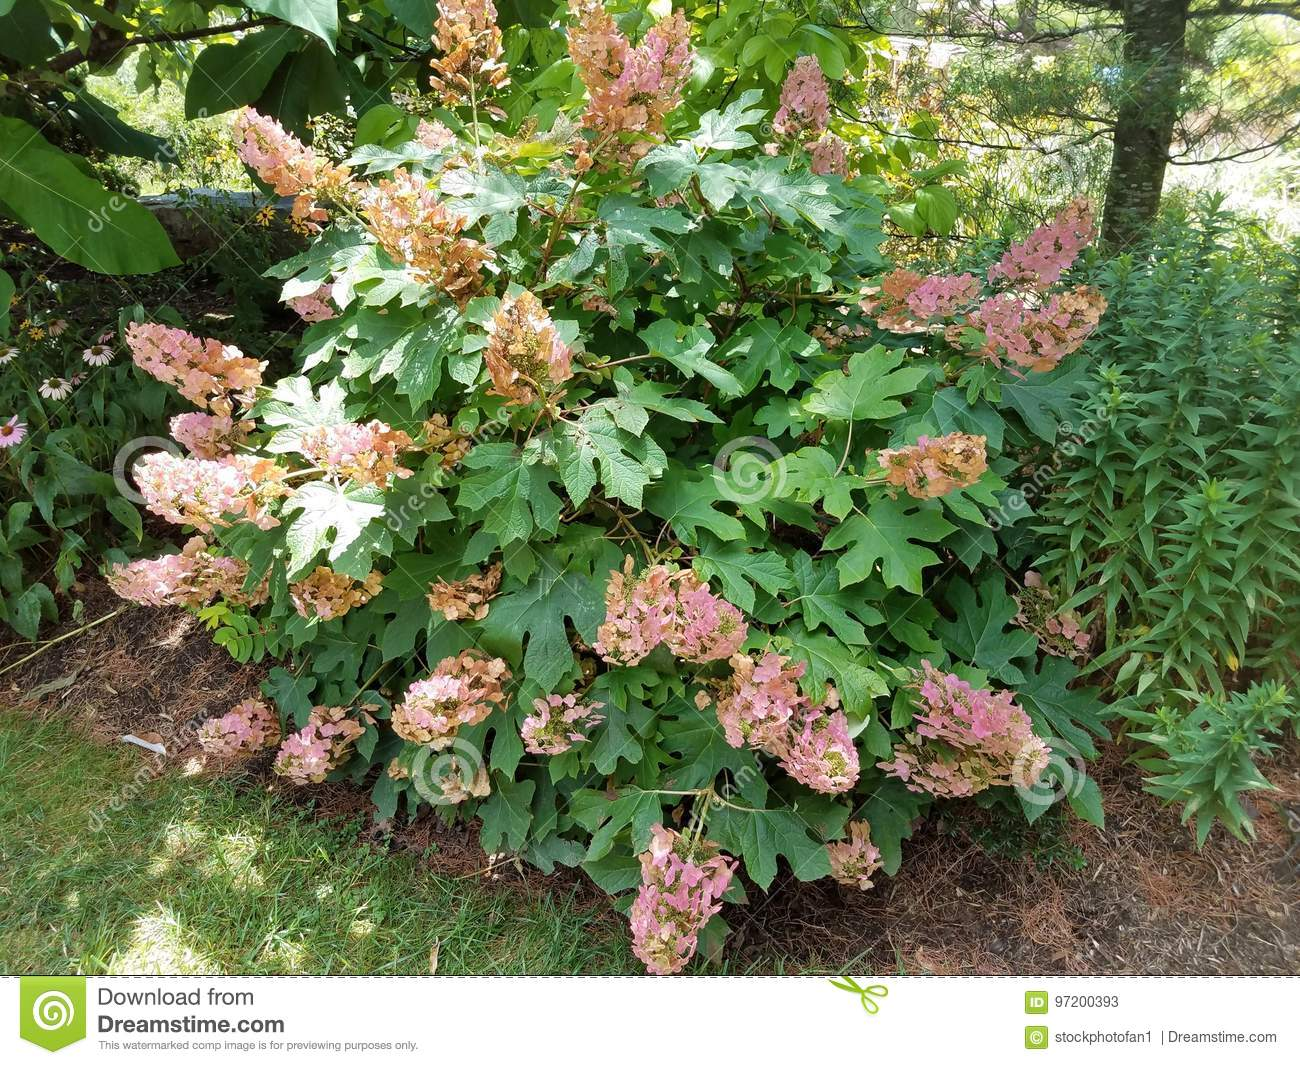 Bush with pink flowers stock image image of green spring 97200393 large bush with pink flowers and green leaves mightylinksfo